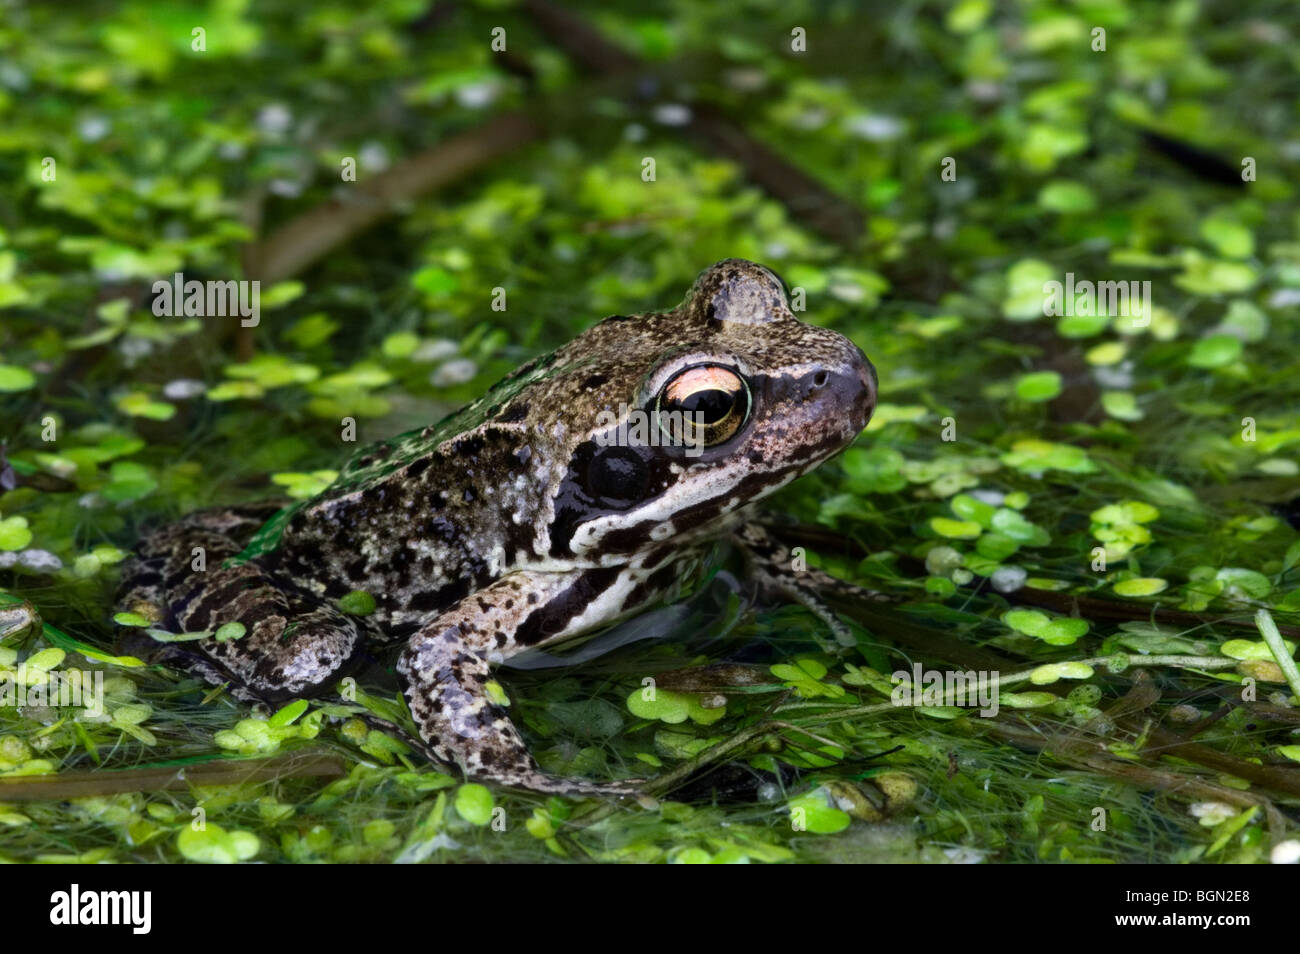 European common brown frog (Rana temporaria) floating amongst duckweed in pond - Stock Image